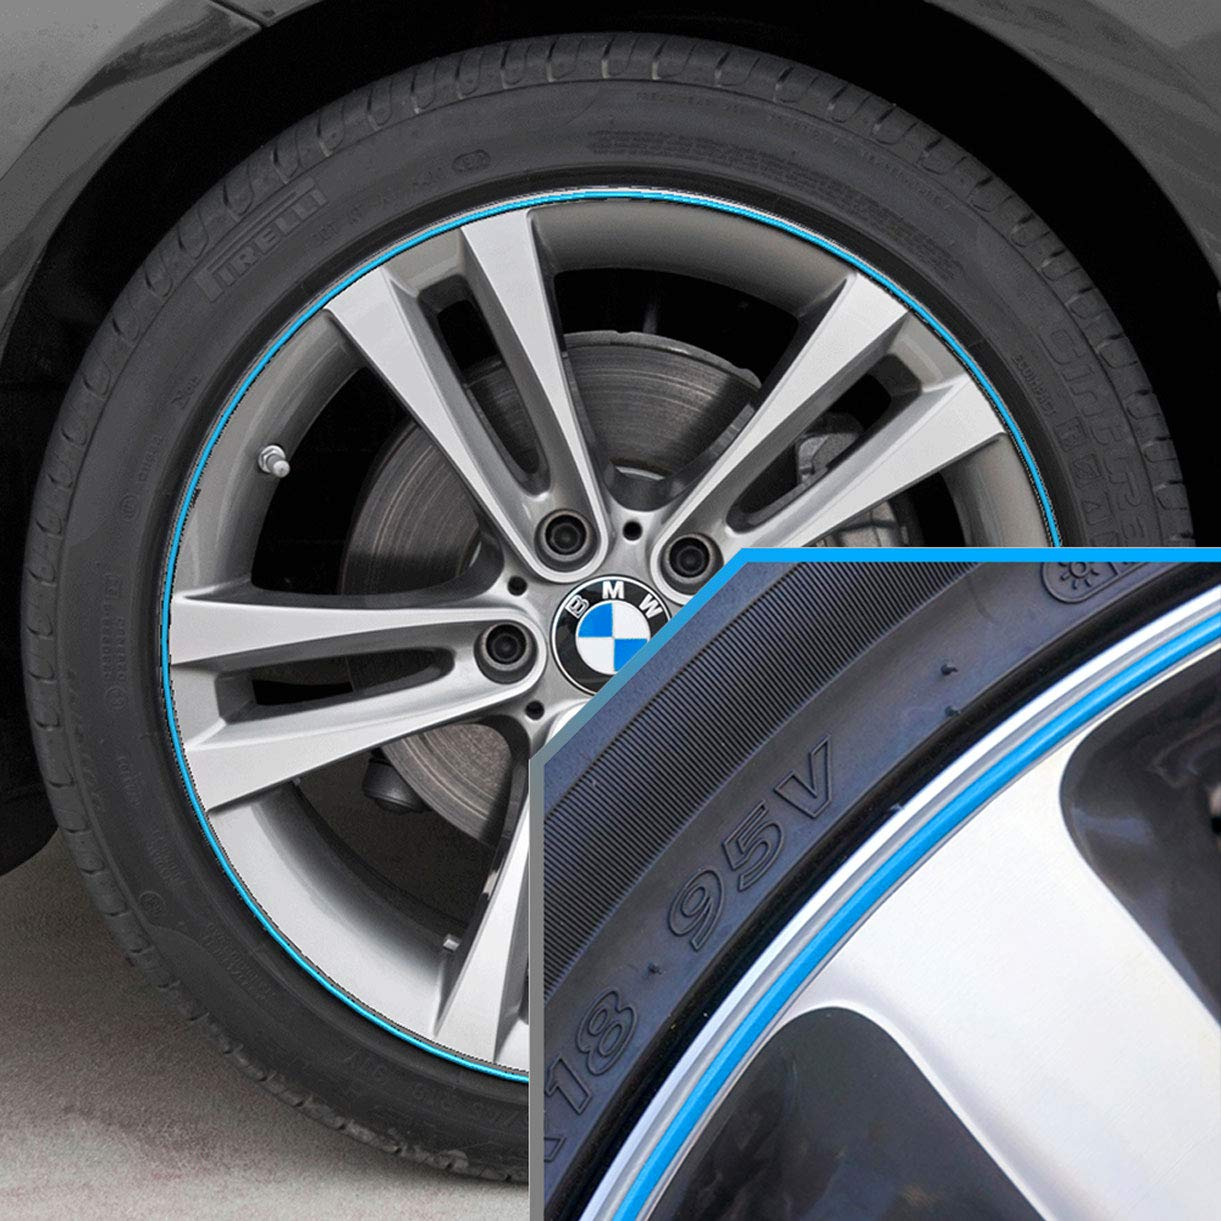 Upgrade Your Auto Wheel Bands Sky Blue in Silver Pinstripe Rim Edge Trim for BMW I3 (Full Kit) by Upgrade Your Auto